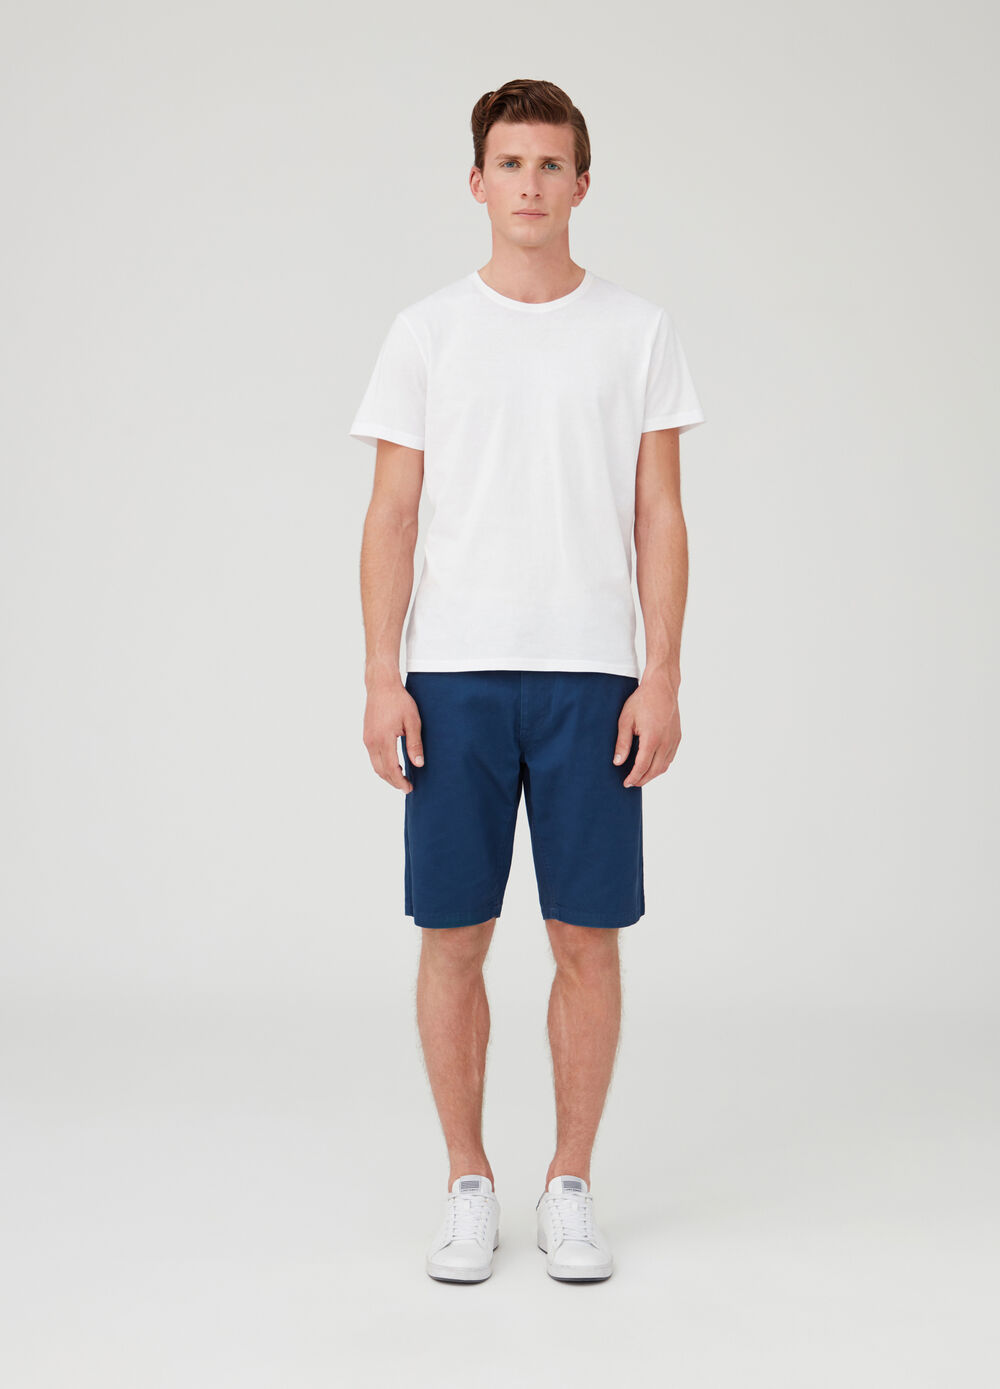 Ribbed T-shirt in 100% cotton jersey